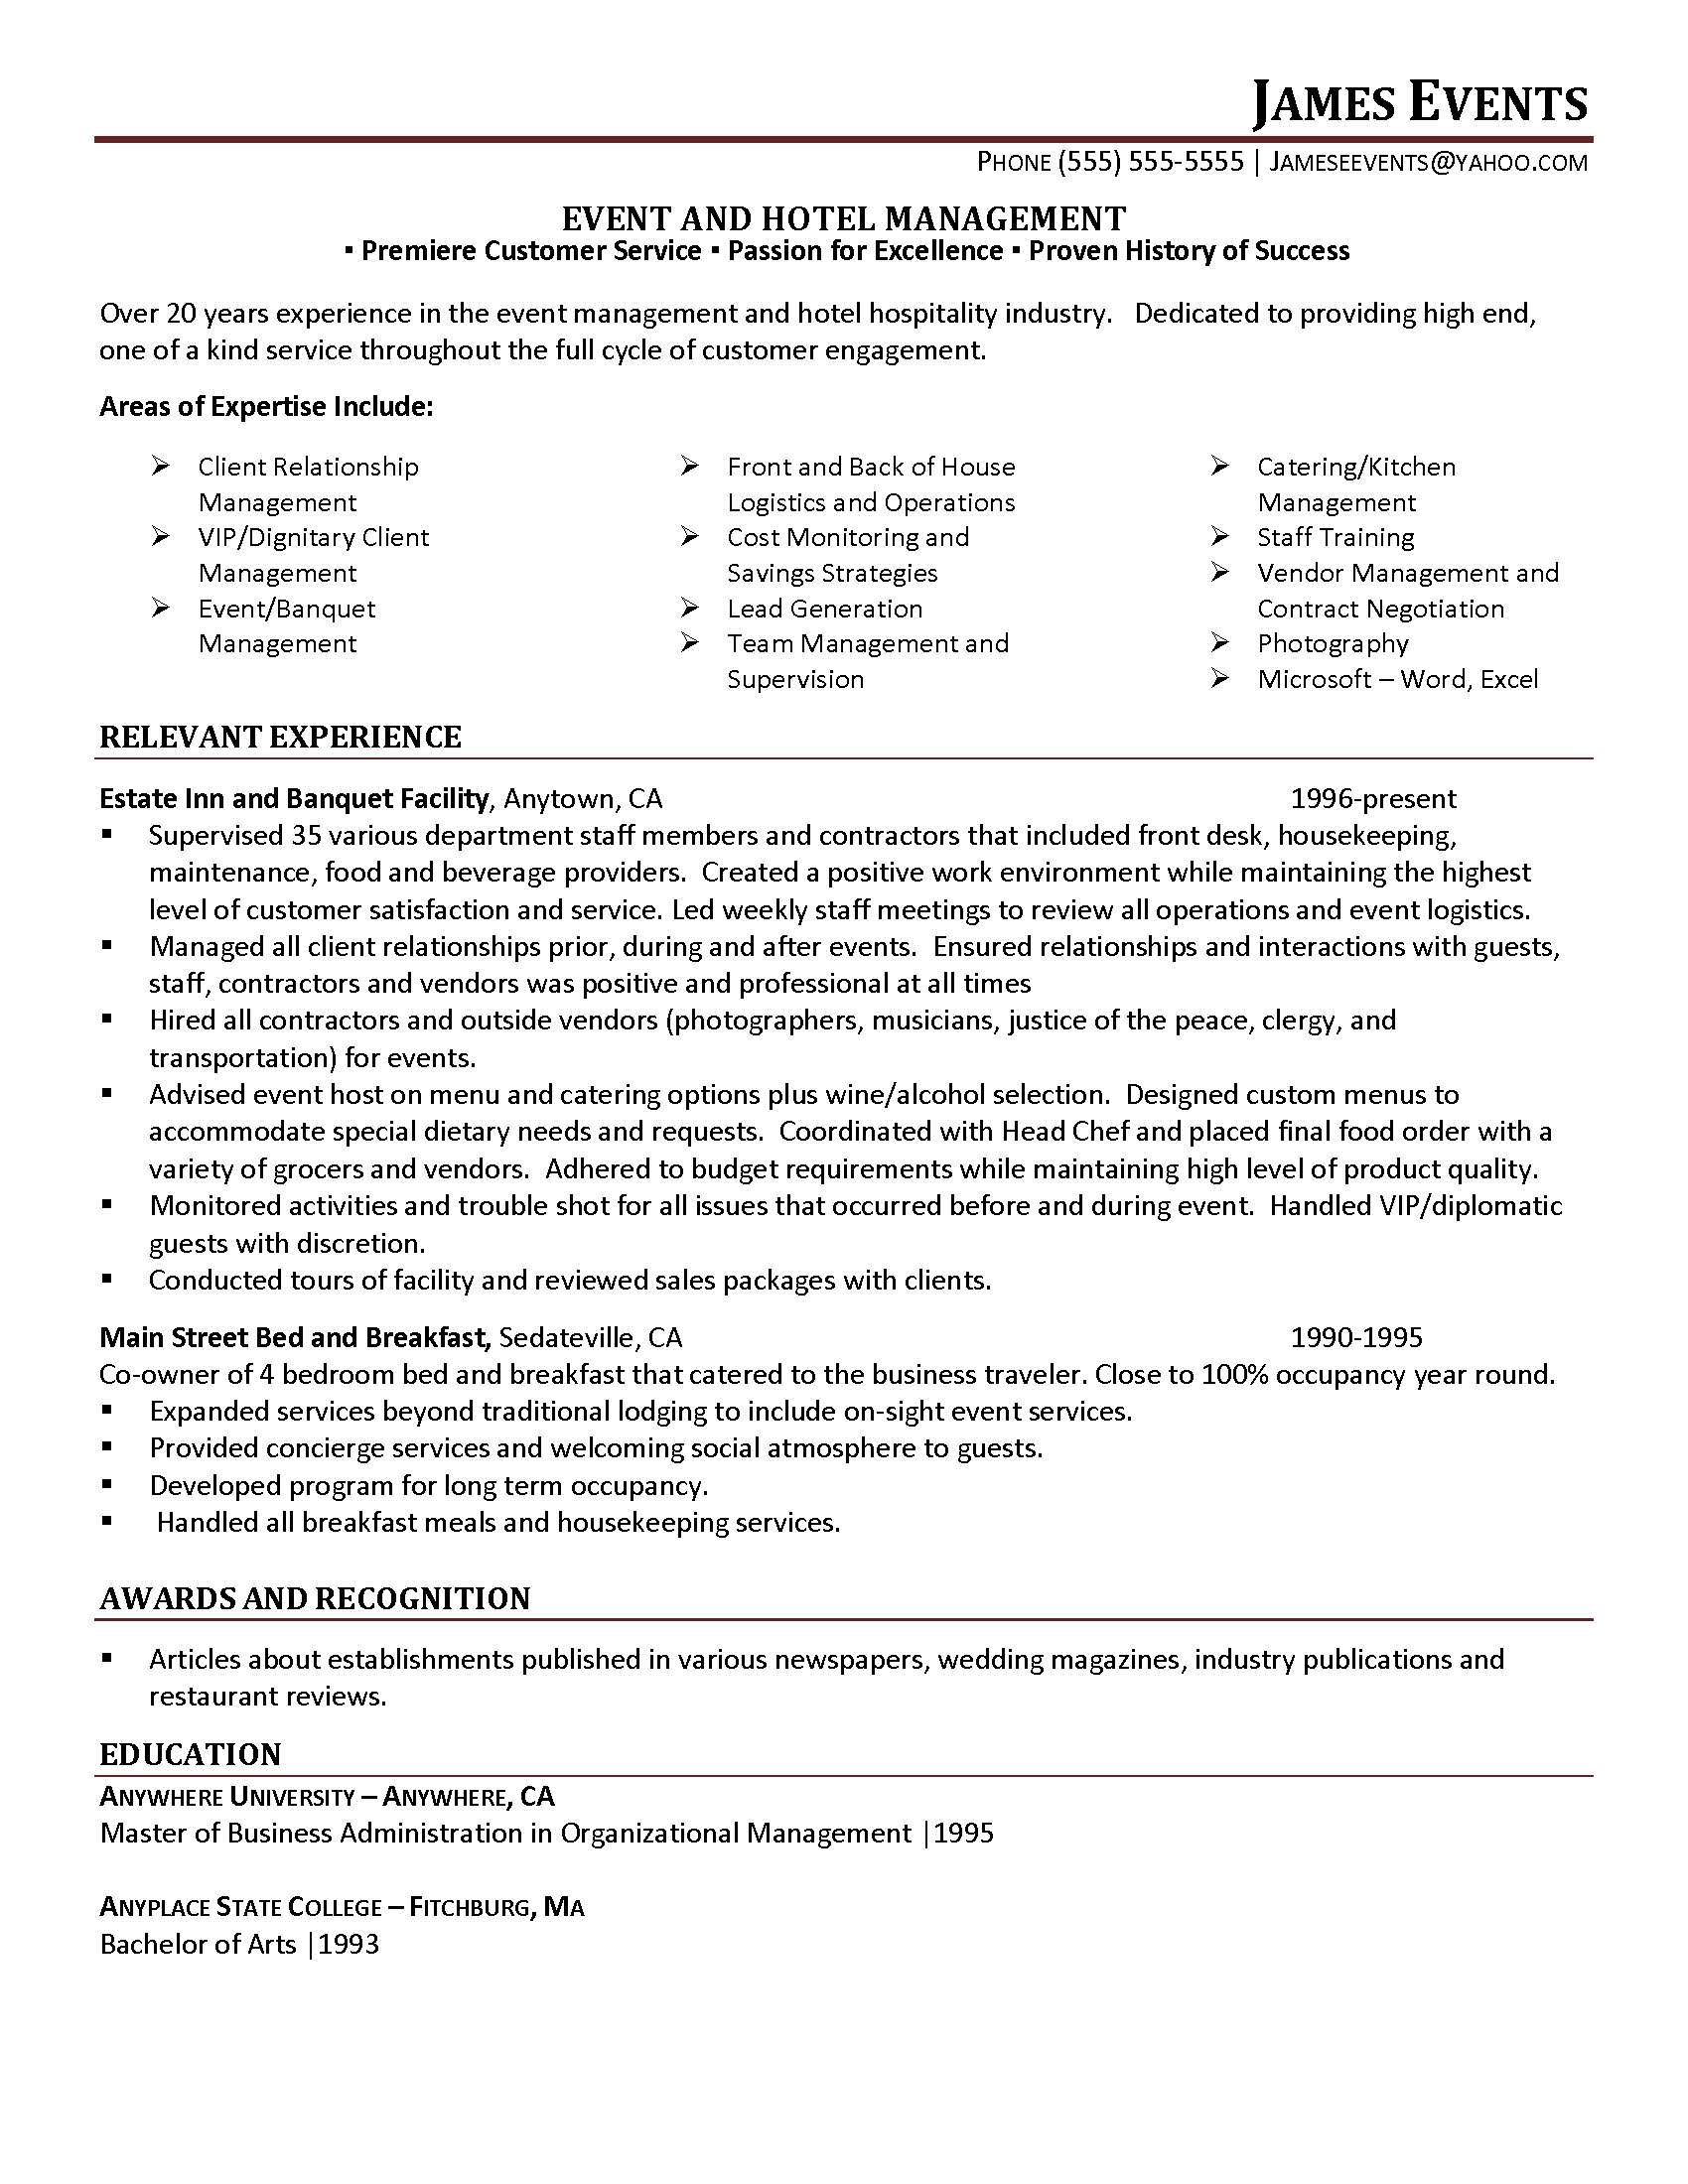 resume design marketing event coordinator resume sample event event planning resume event manager resume event coordinator resume sample